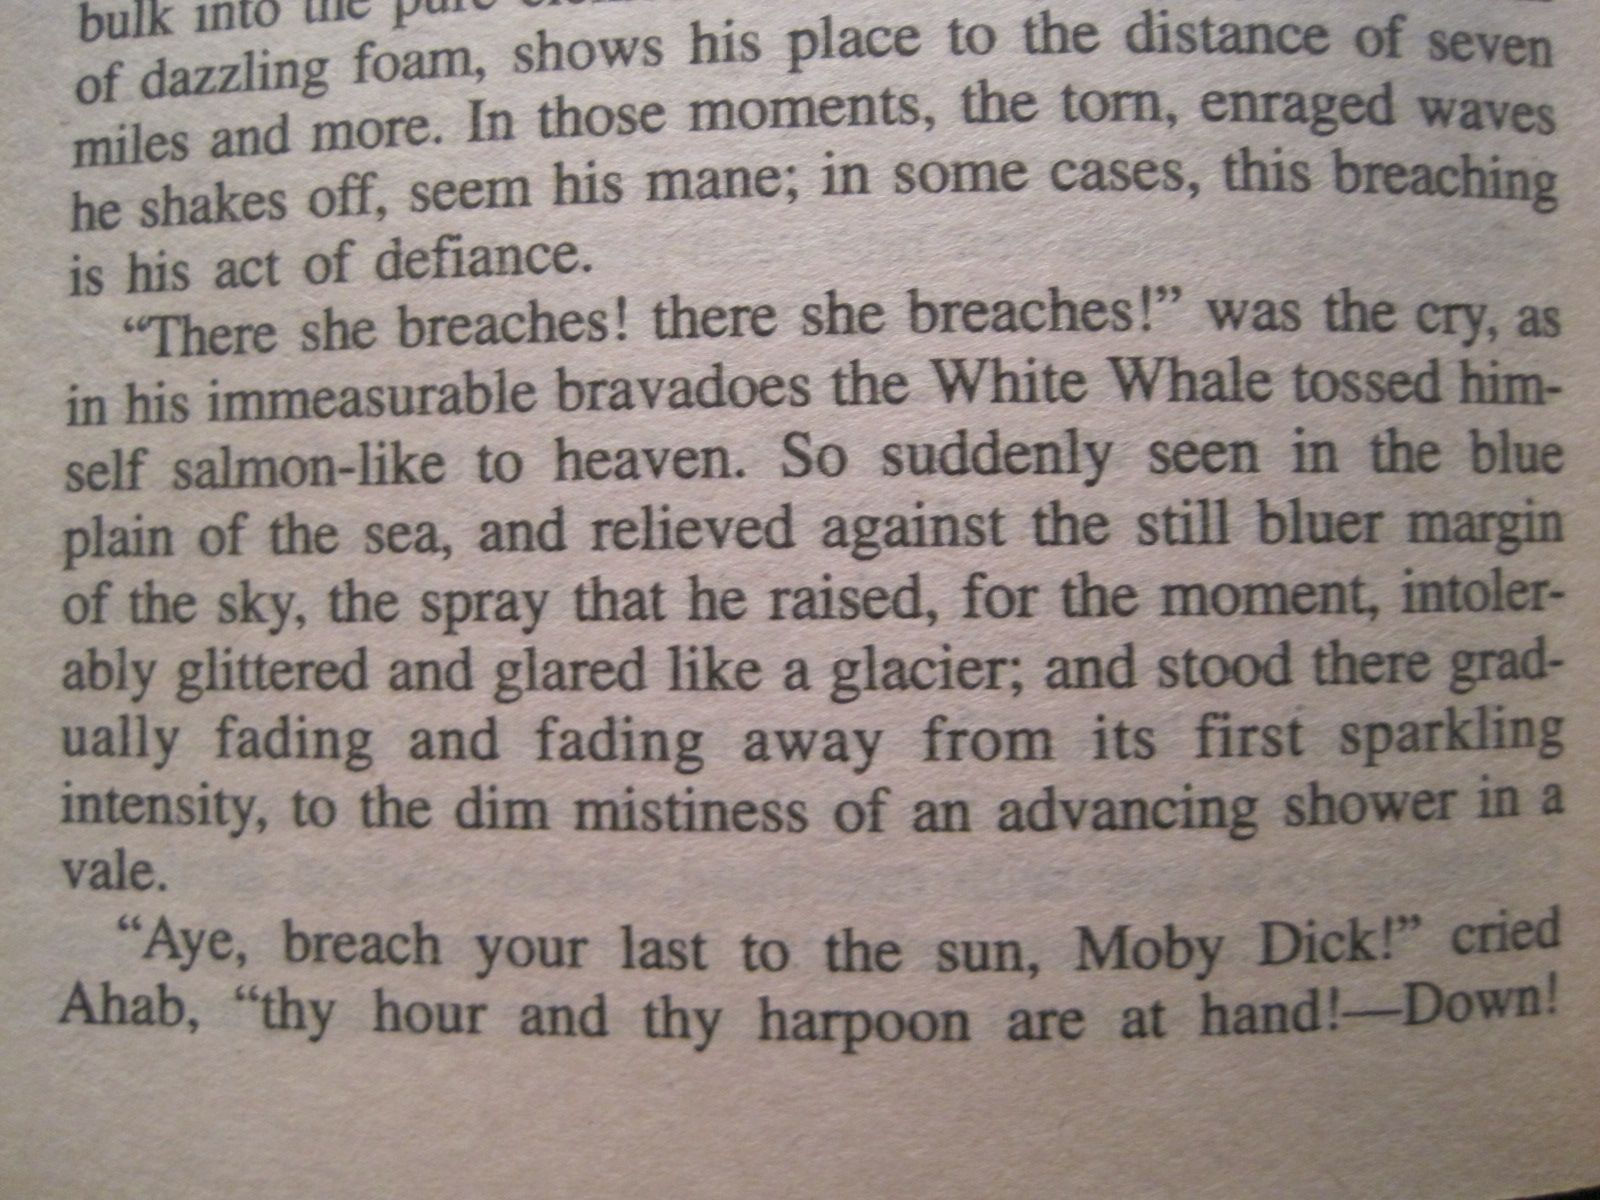 Moby dick ahab quotes